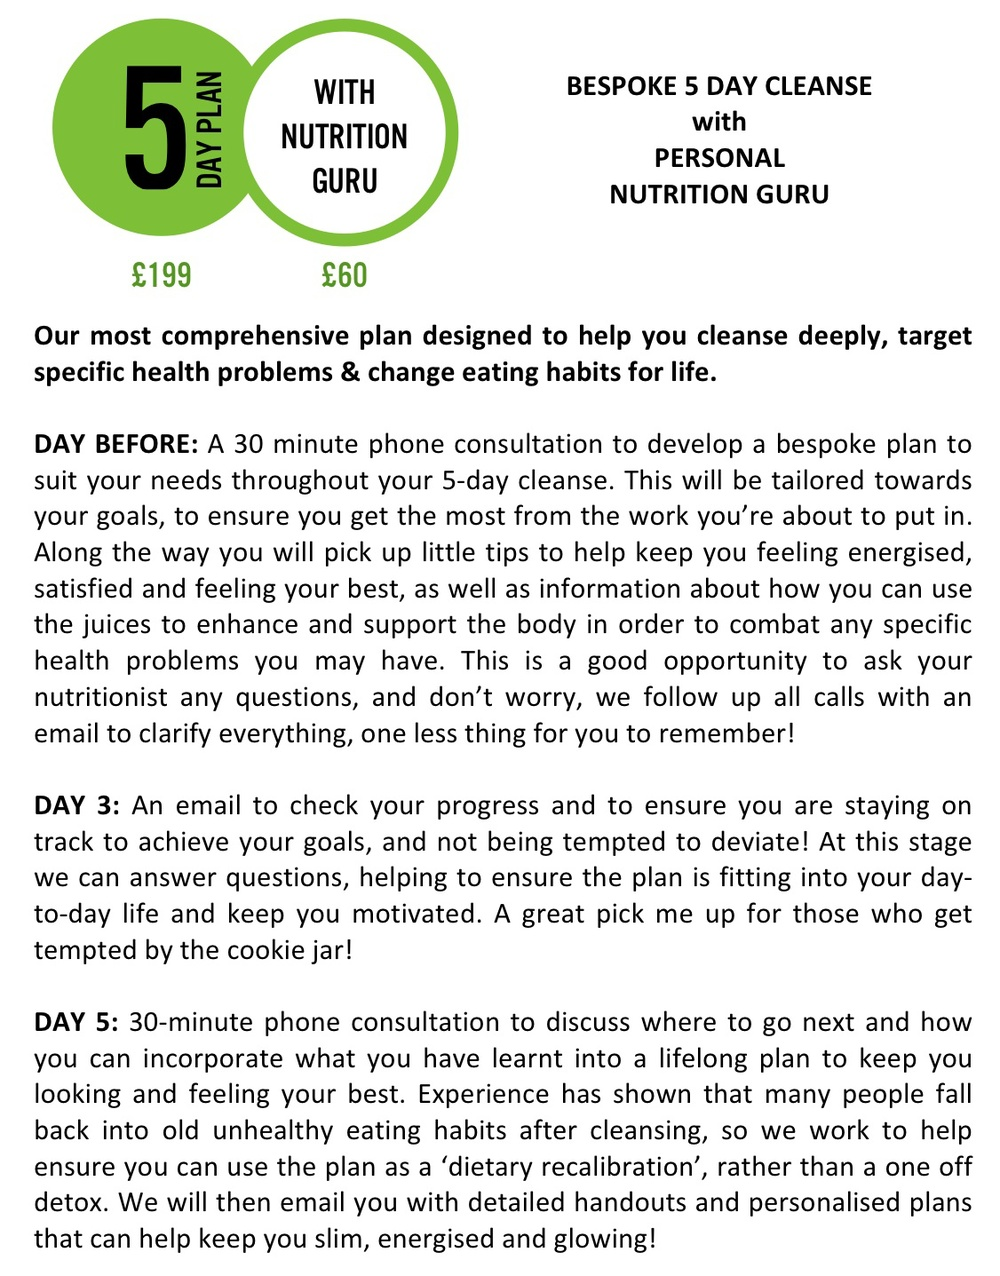 5 Day Plan With Nutrition